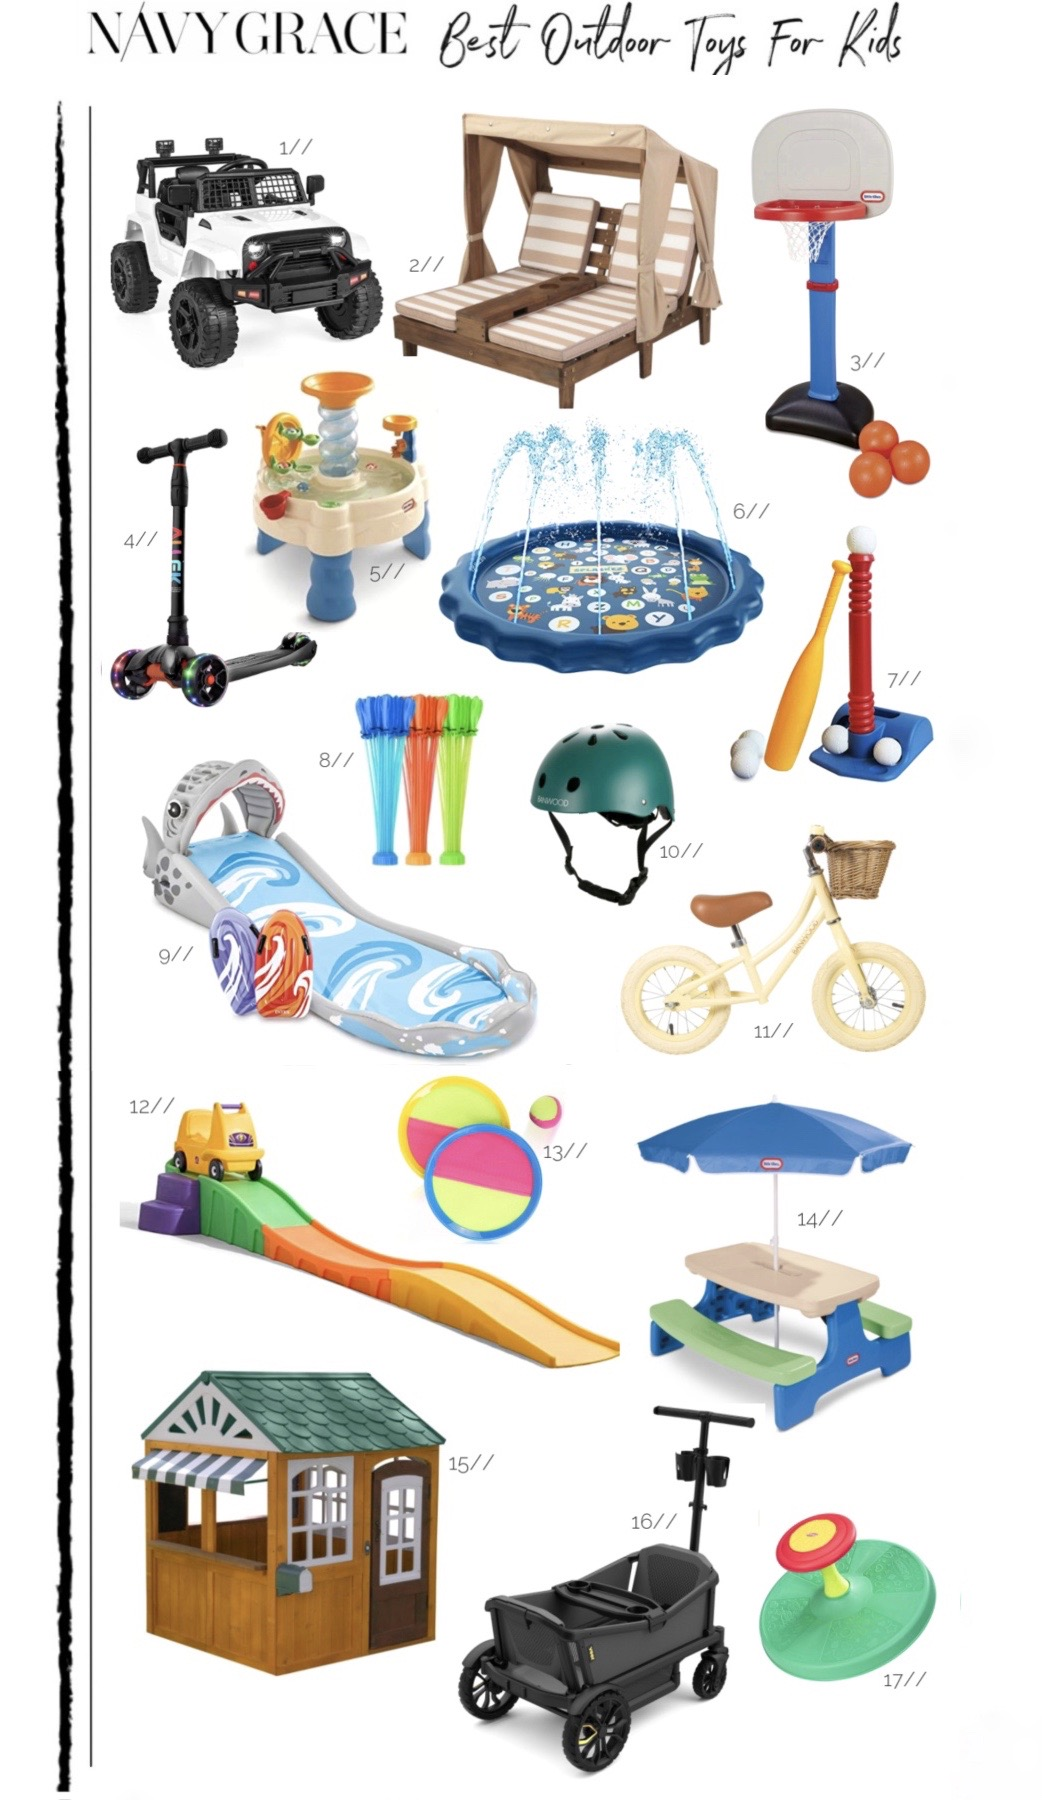 BEST OUTDOOR TOYS FOR KIDS ON AMAZON featured by top San Francisco lifestyle blog, Navy Grace.